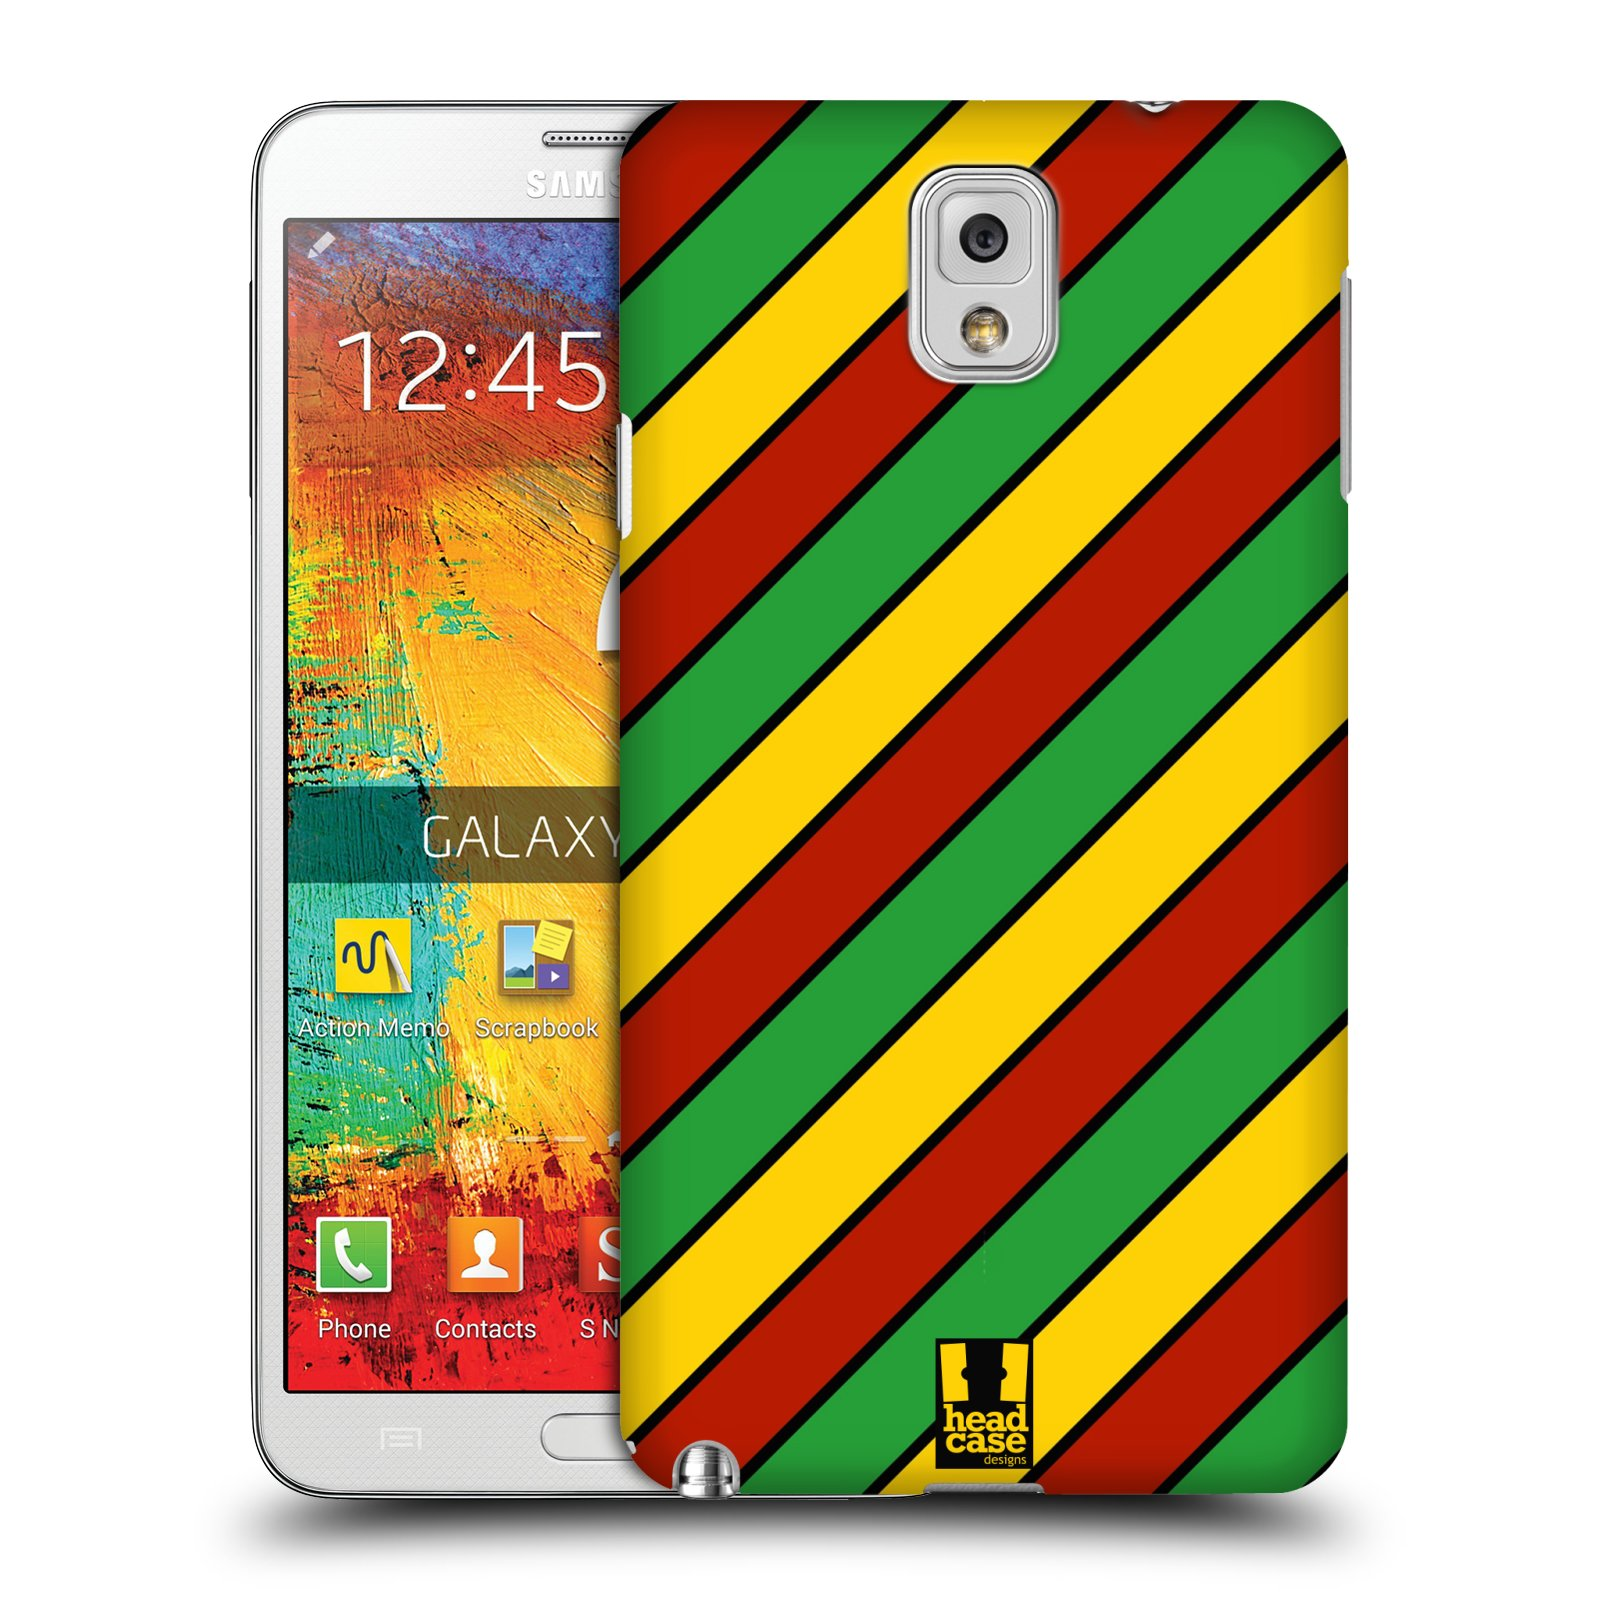 How to scrapbook note 3